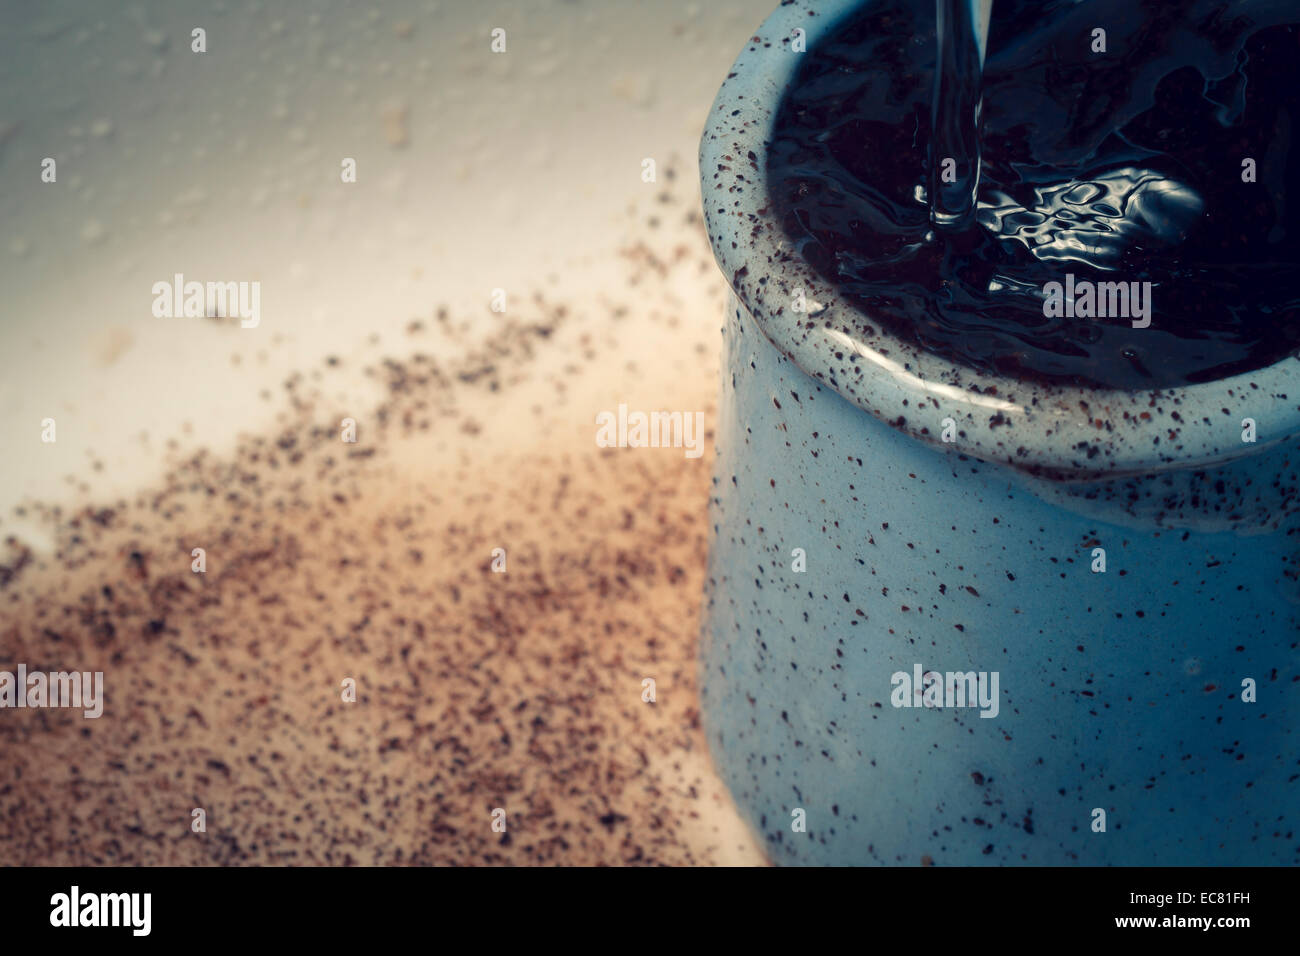 cup container pot with coffe grounds and water - Stock Image